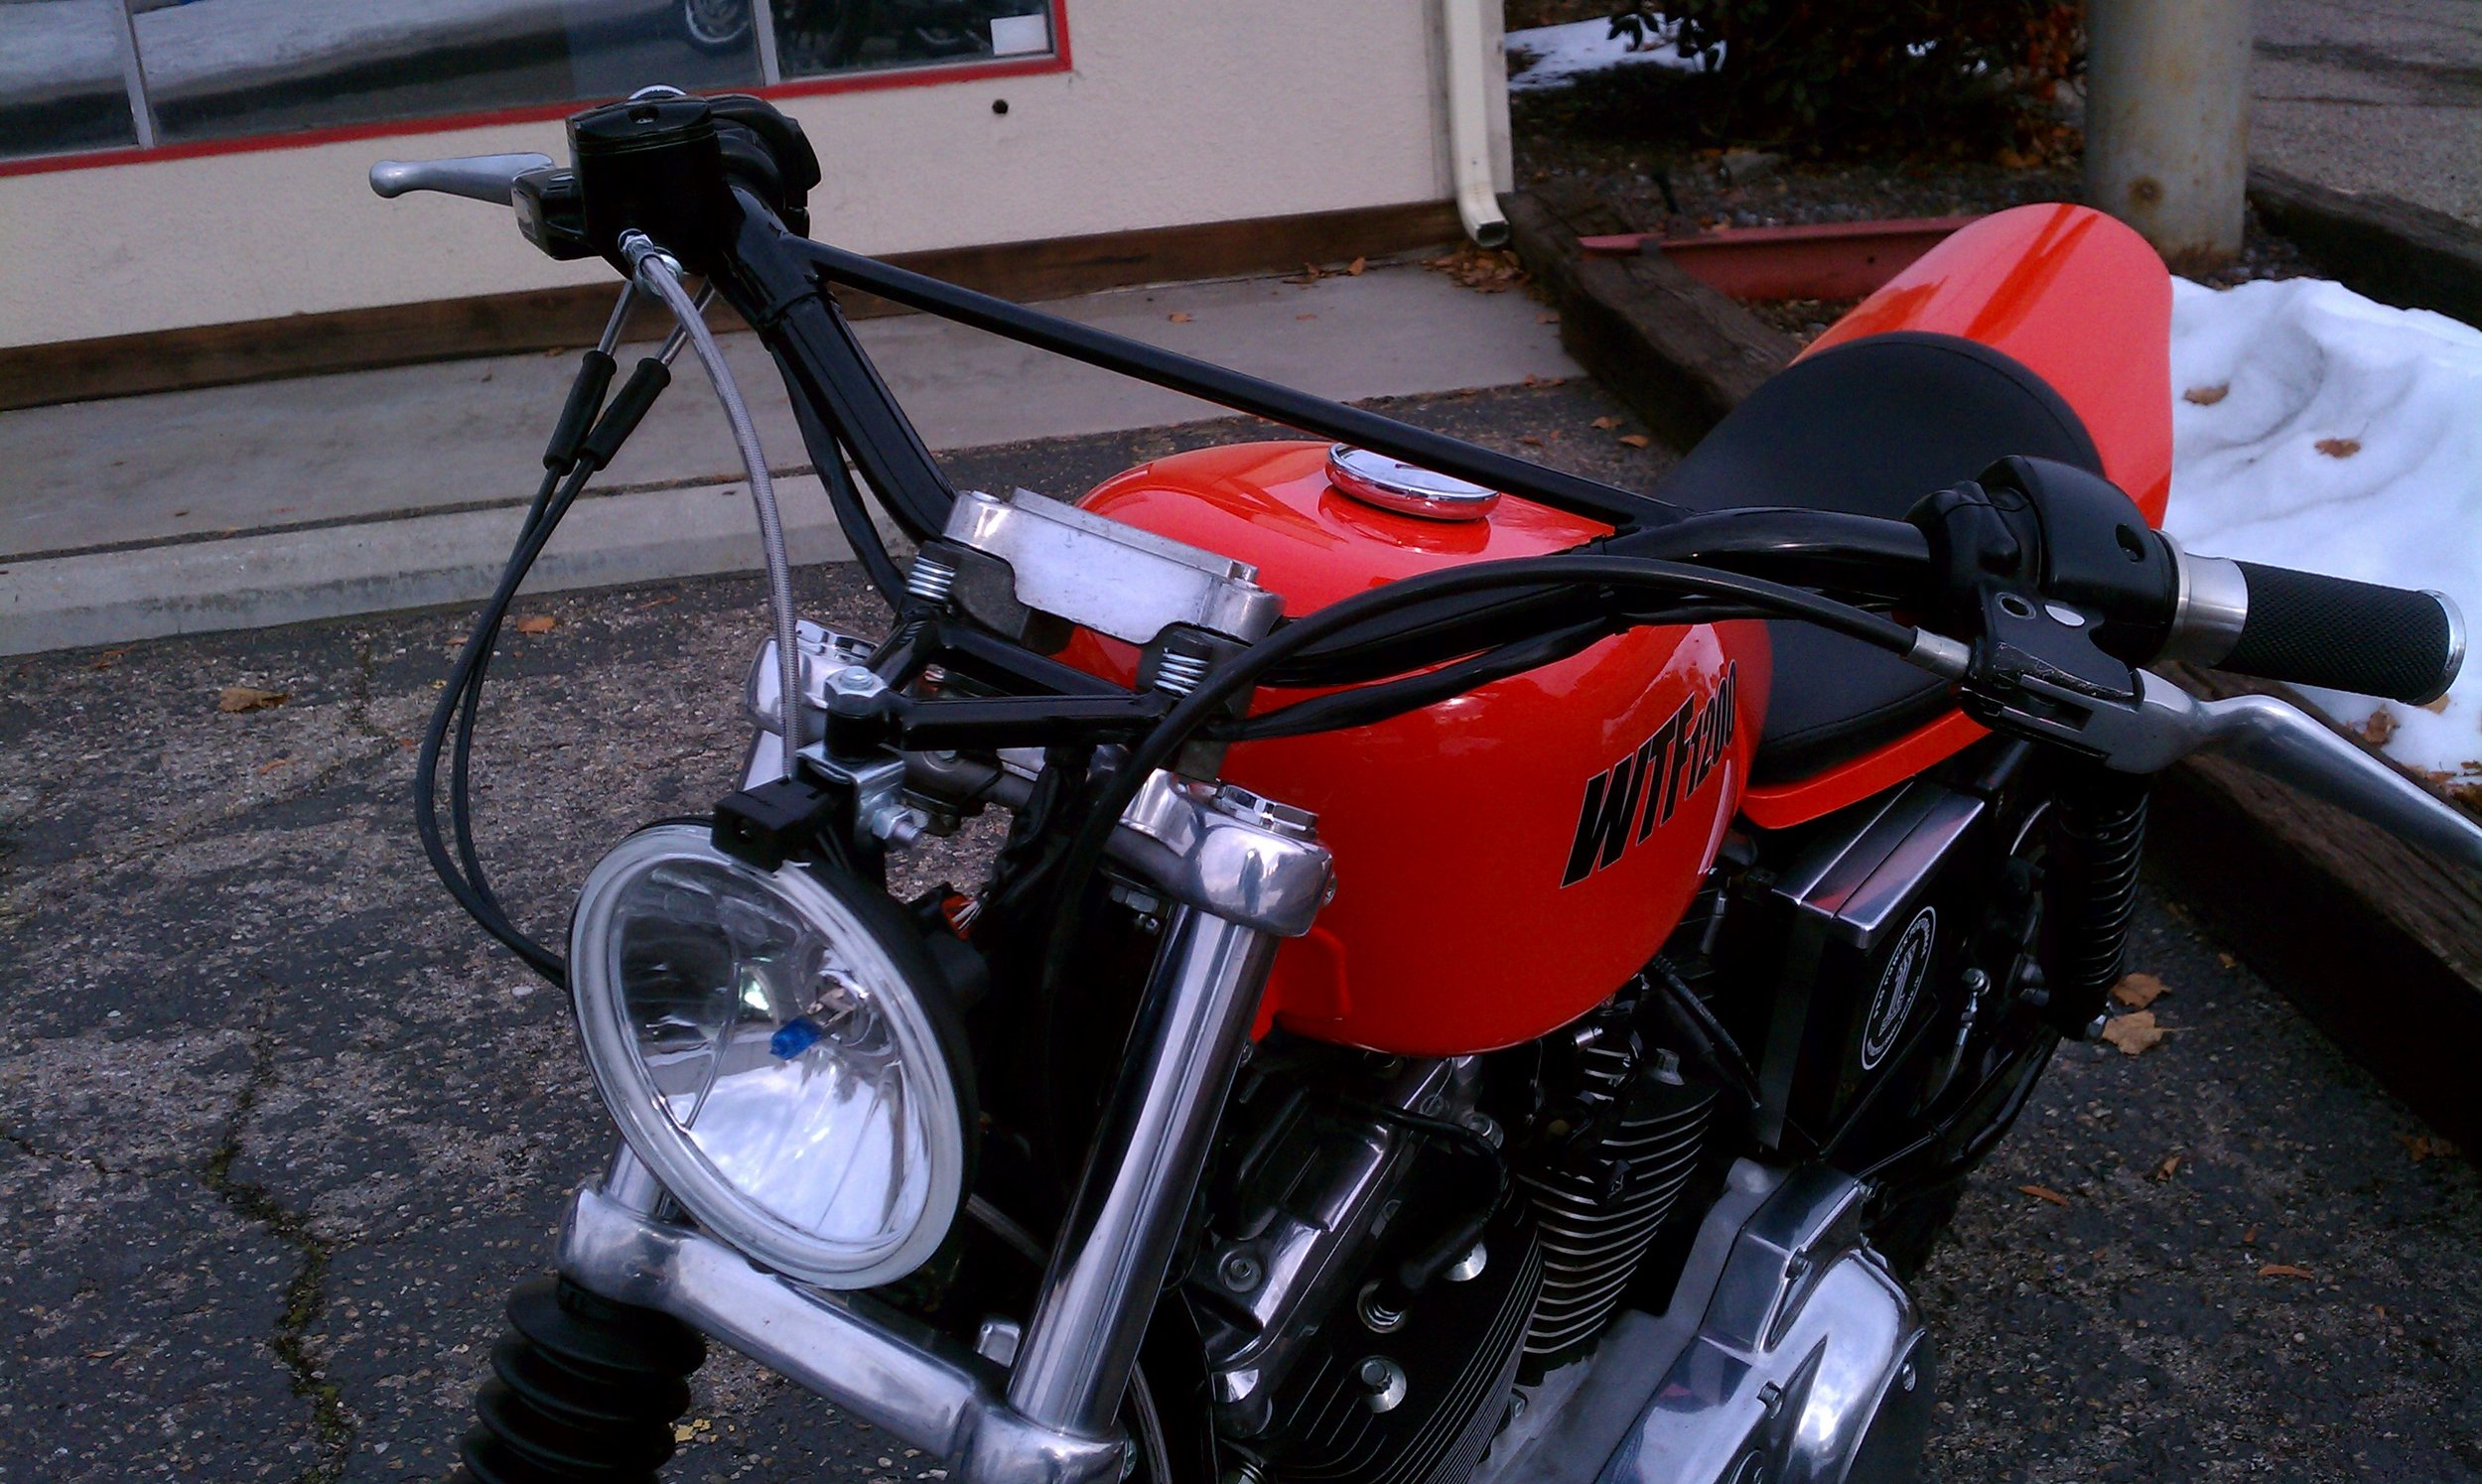 Custom handlebars and headlight mount by Todd Apple